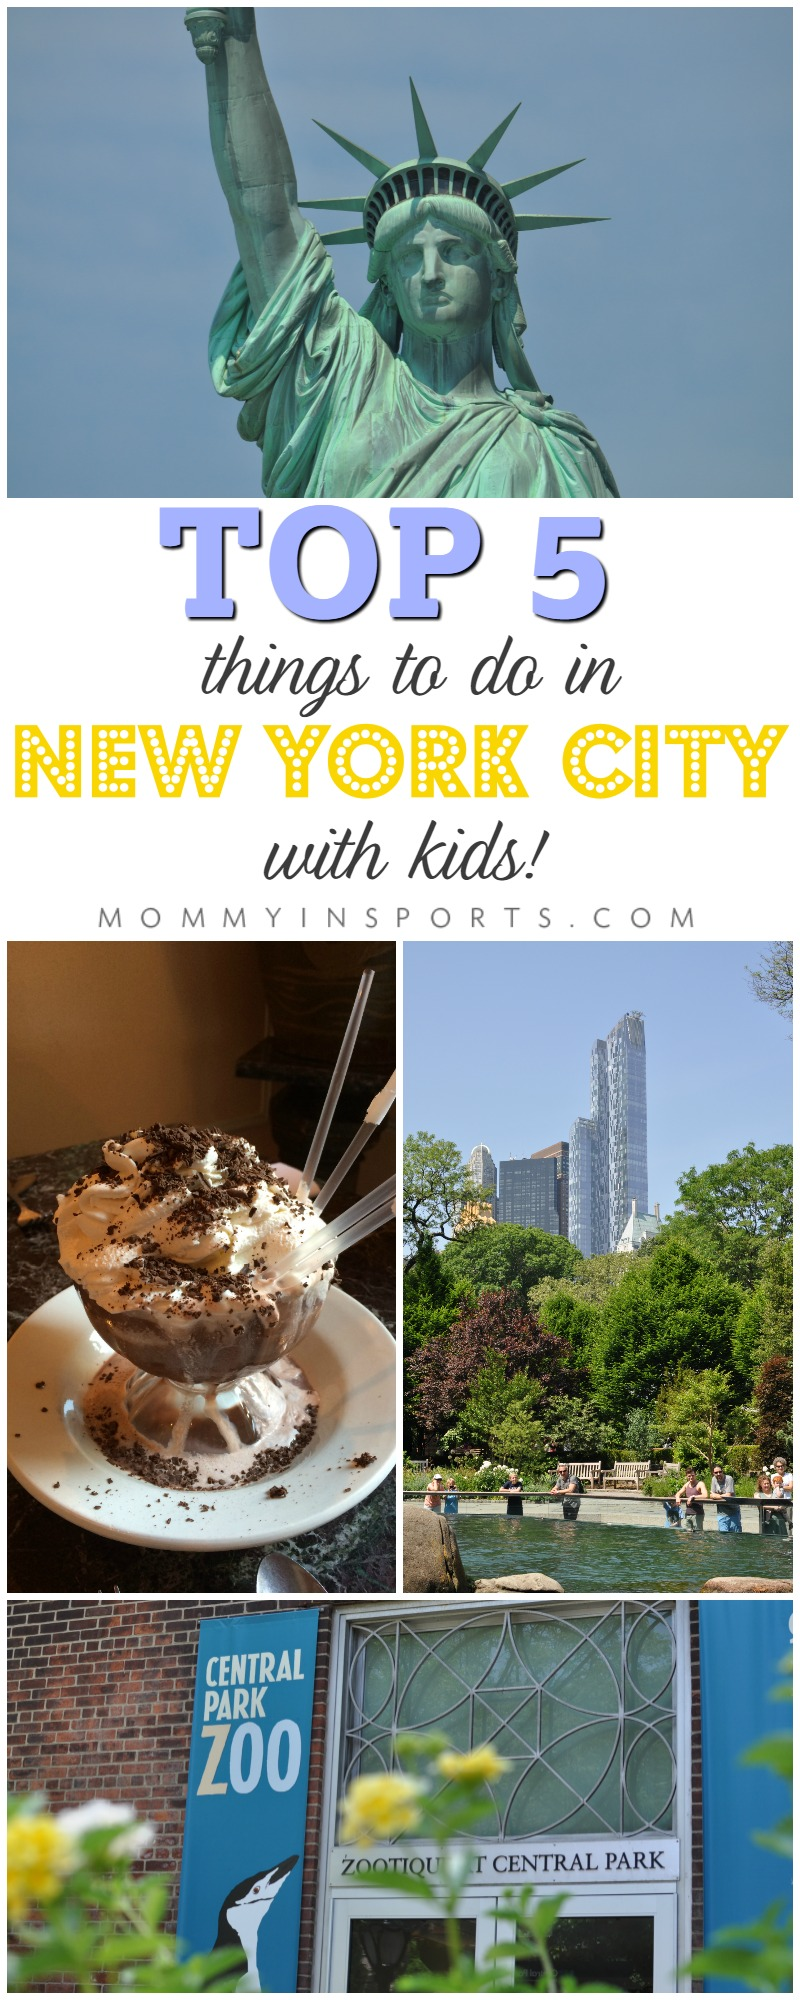 Top 5 things to do in new york city with kids kristen hewitt for Top things to do in nyc with kids